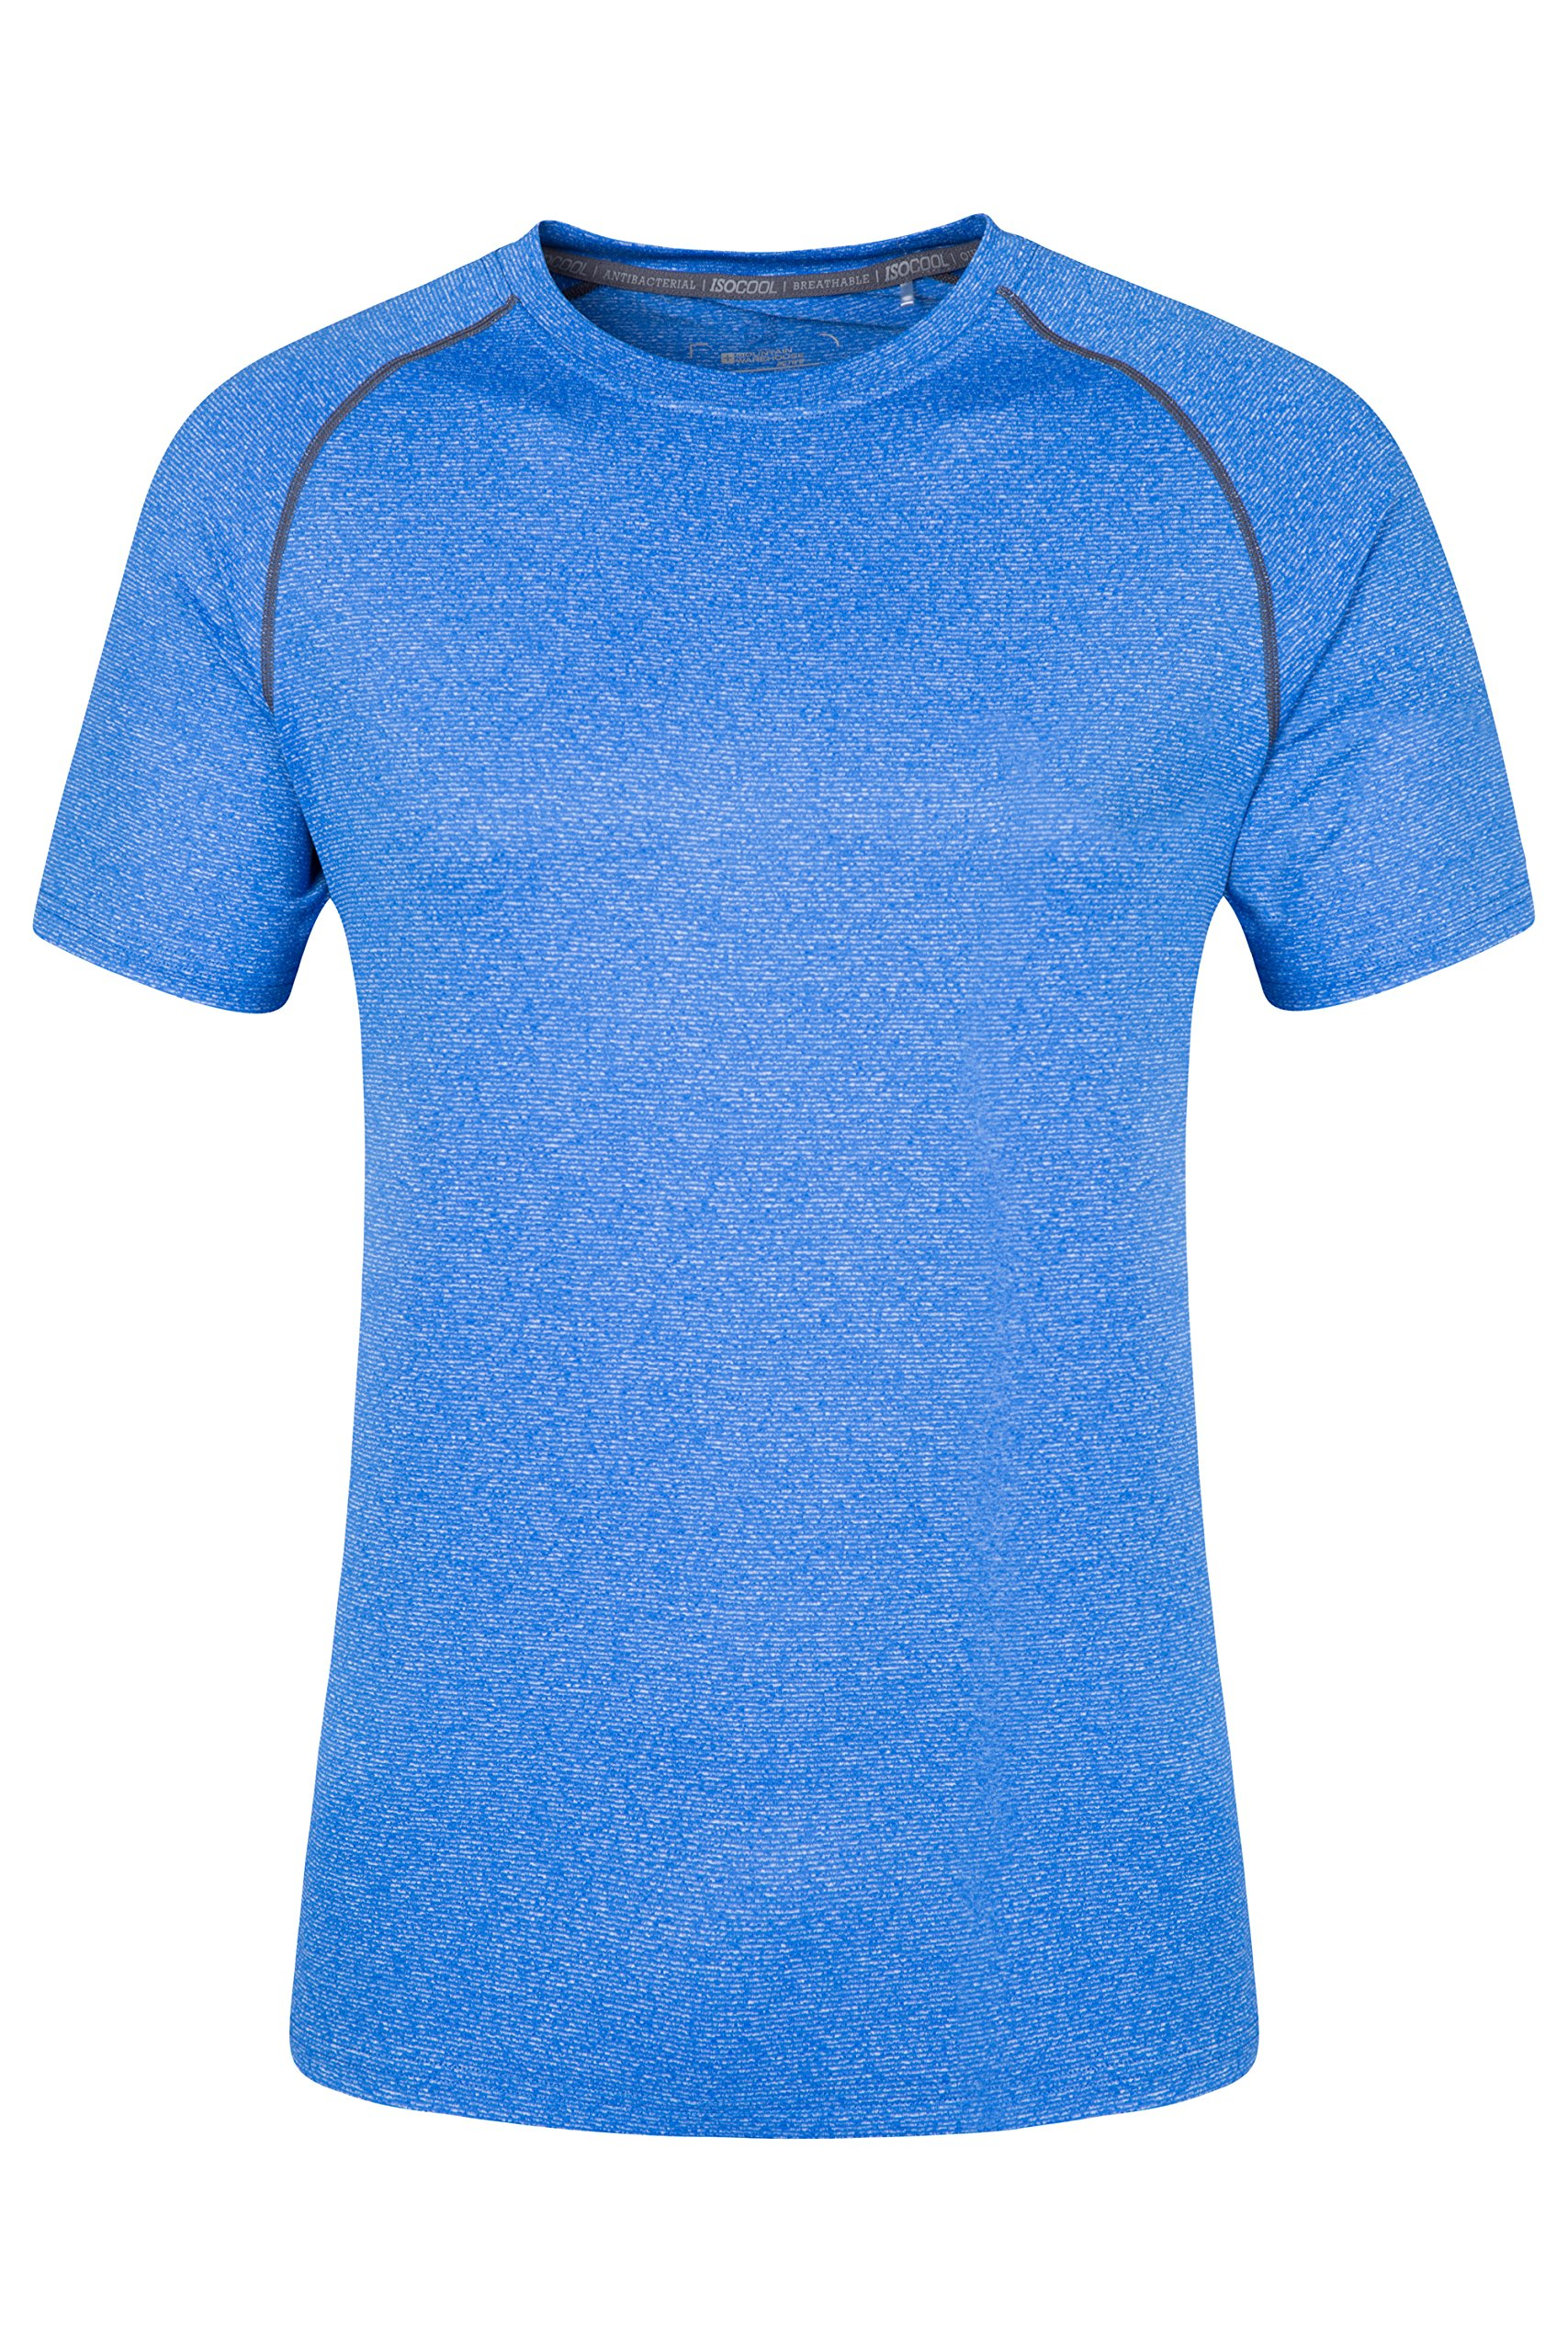 91GsAL476aL - Mountain Warehouse IsoCool Agra Mens Striped Tee - UPF30+ UV Protection Spring T-Shirt, Lightweight Tshirt, Quick Dry, Breathable Top - for Travelling, Hiking & Daily